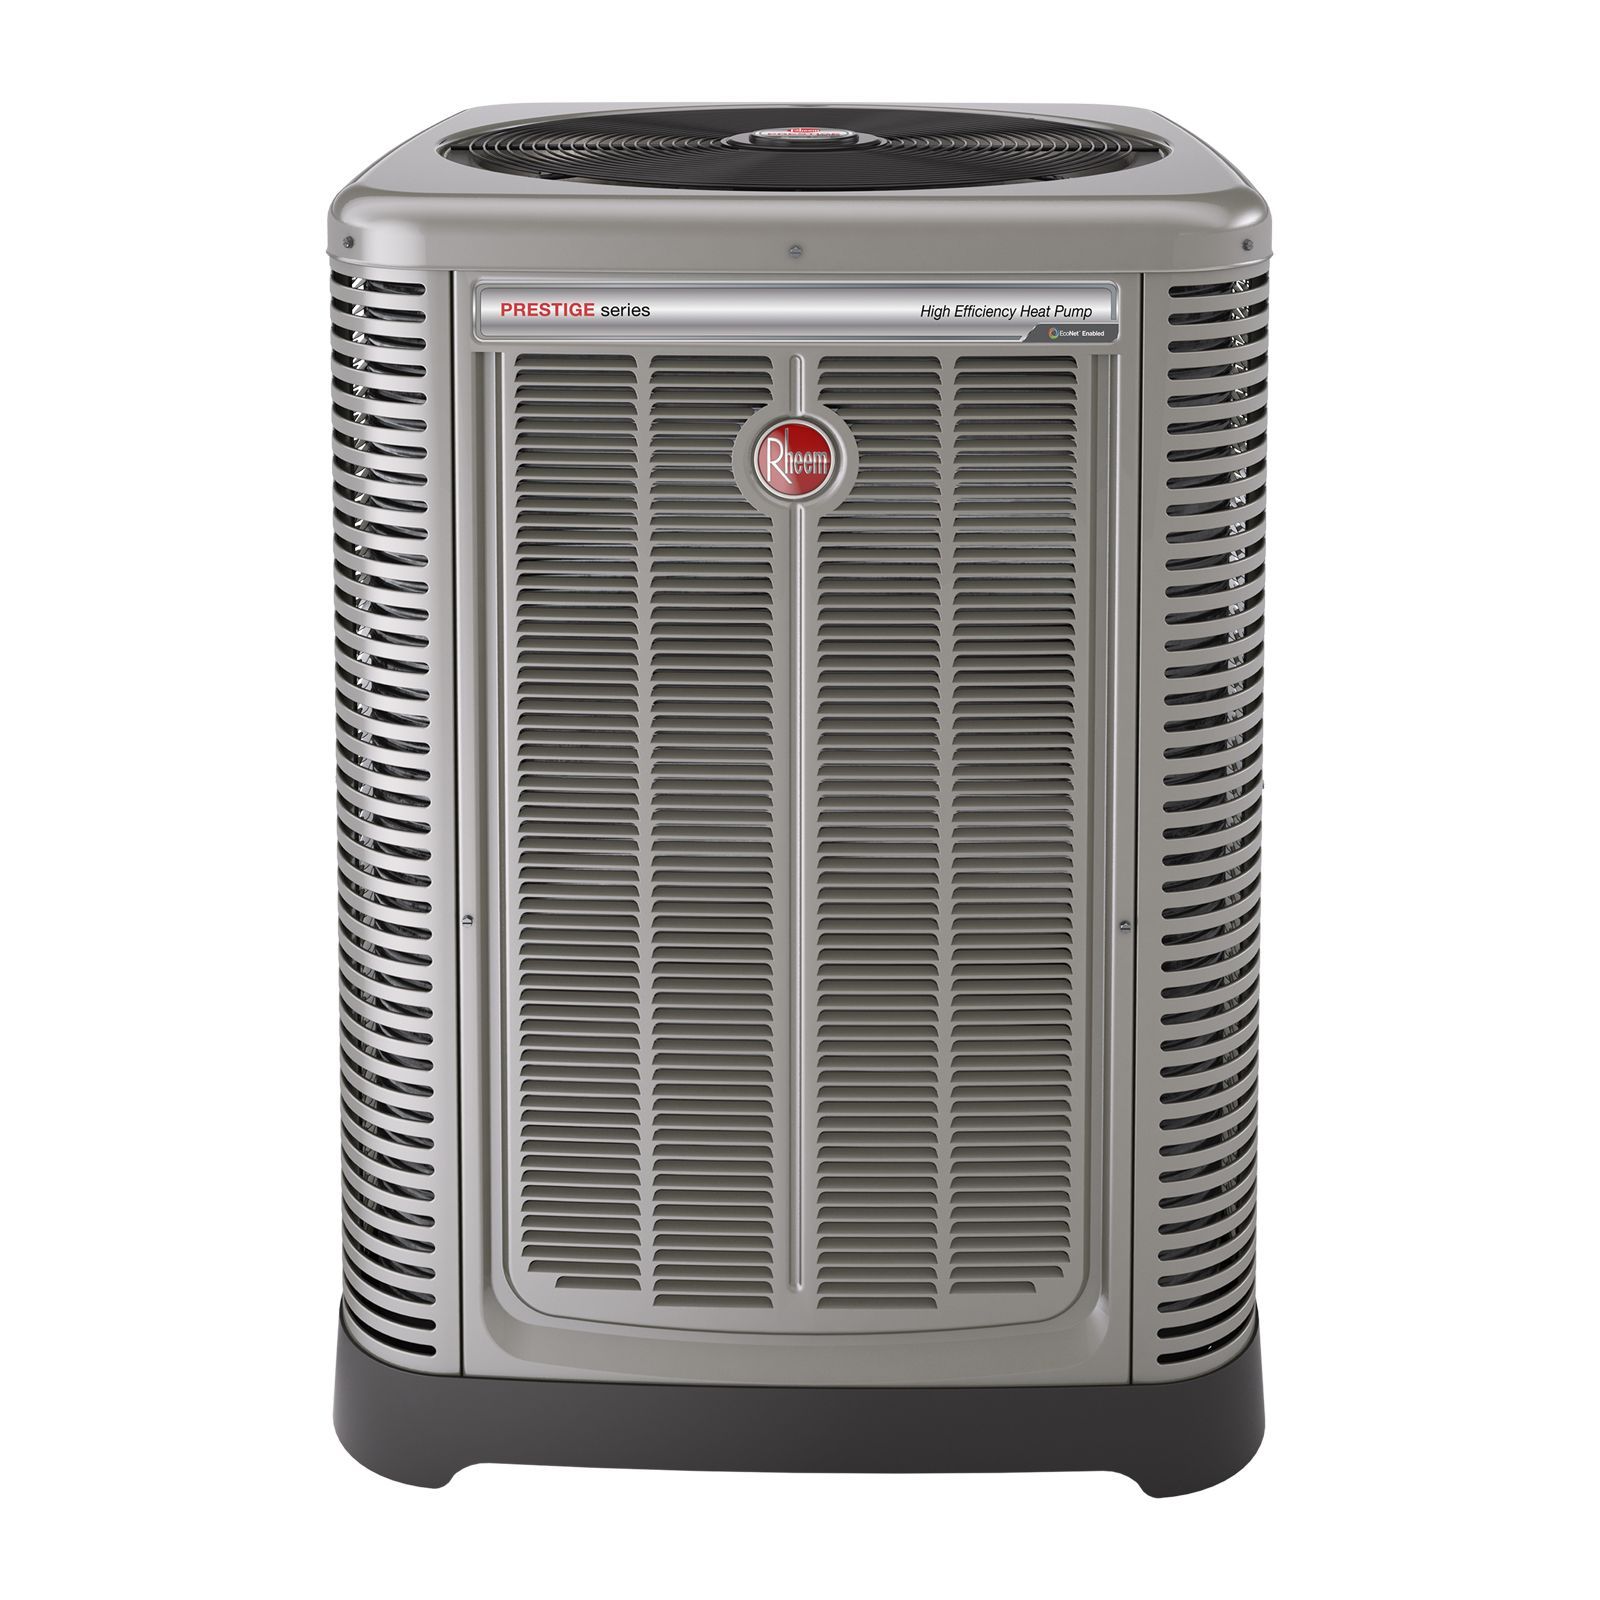 Rheem RP2060AJVCA -  Prestigea® Series 5 Ton, 20 SEER, EcoNet Enabled, Inverter Driven, Variable Speed Heat Pump